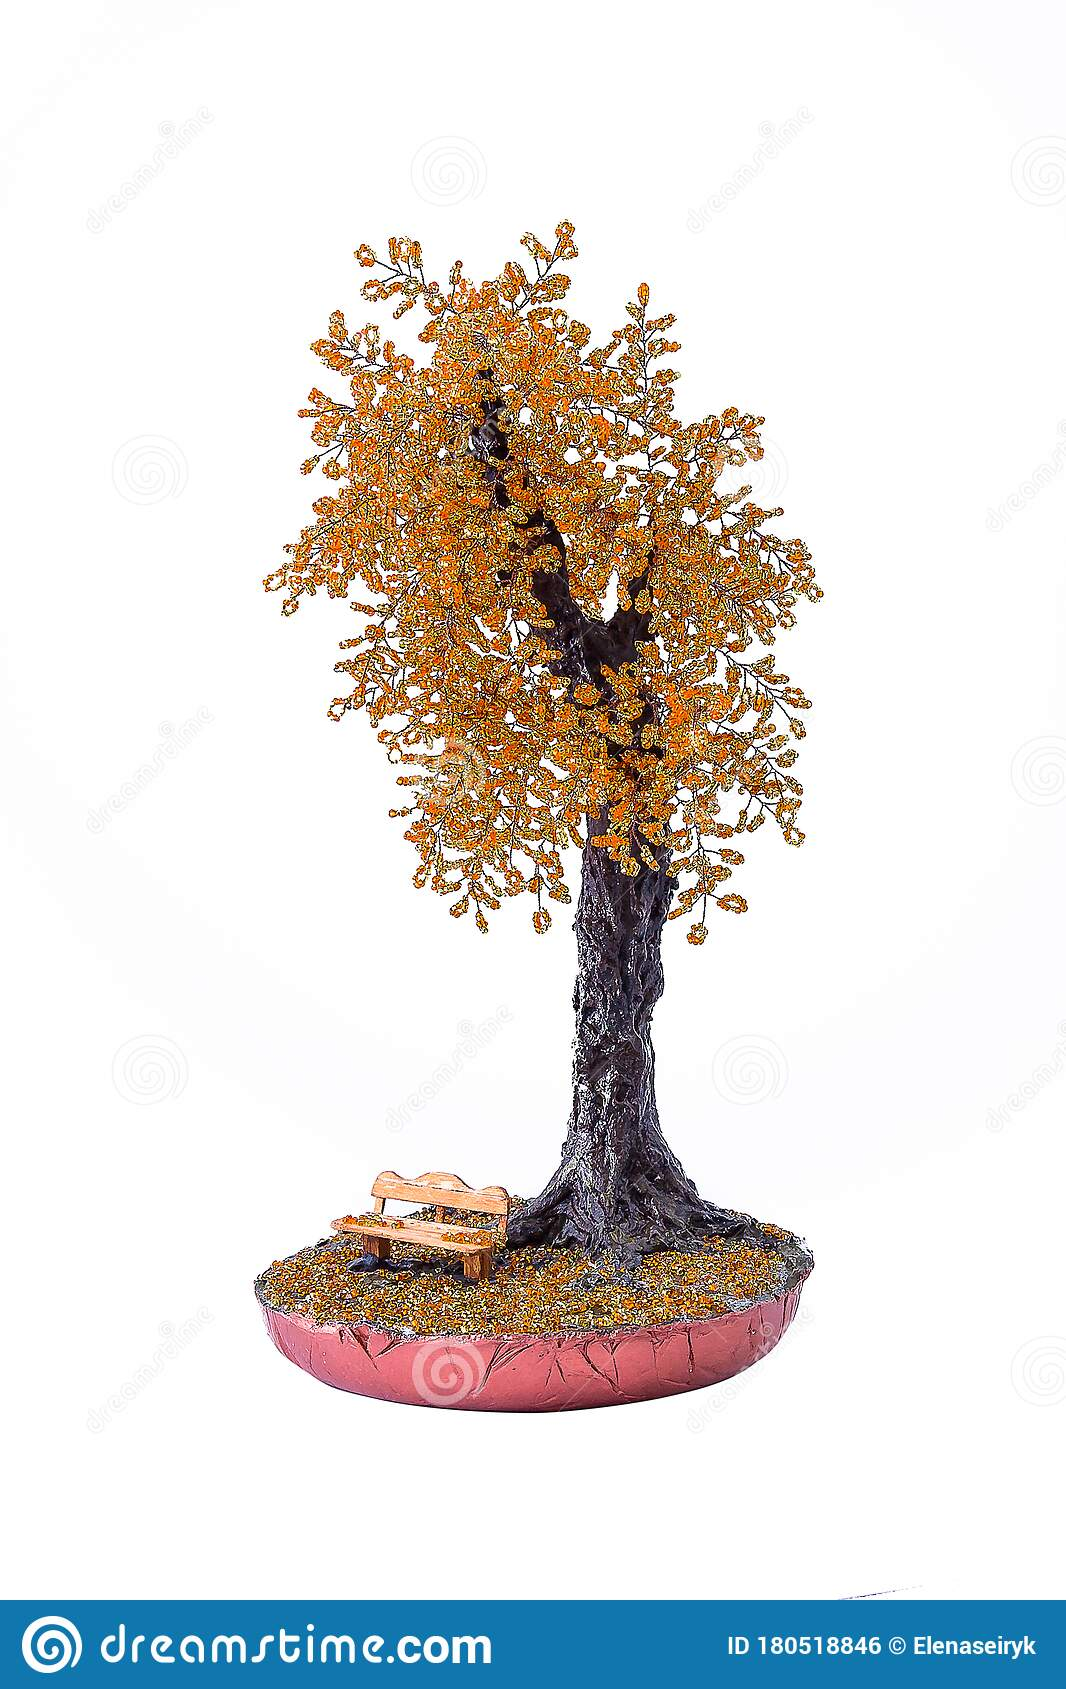 Beaded Bonsai Tree With Decorative Bench Under It Handmade Souvenir Isolated On White Stock Photo Image Of White Bench 180518846